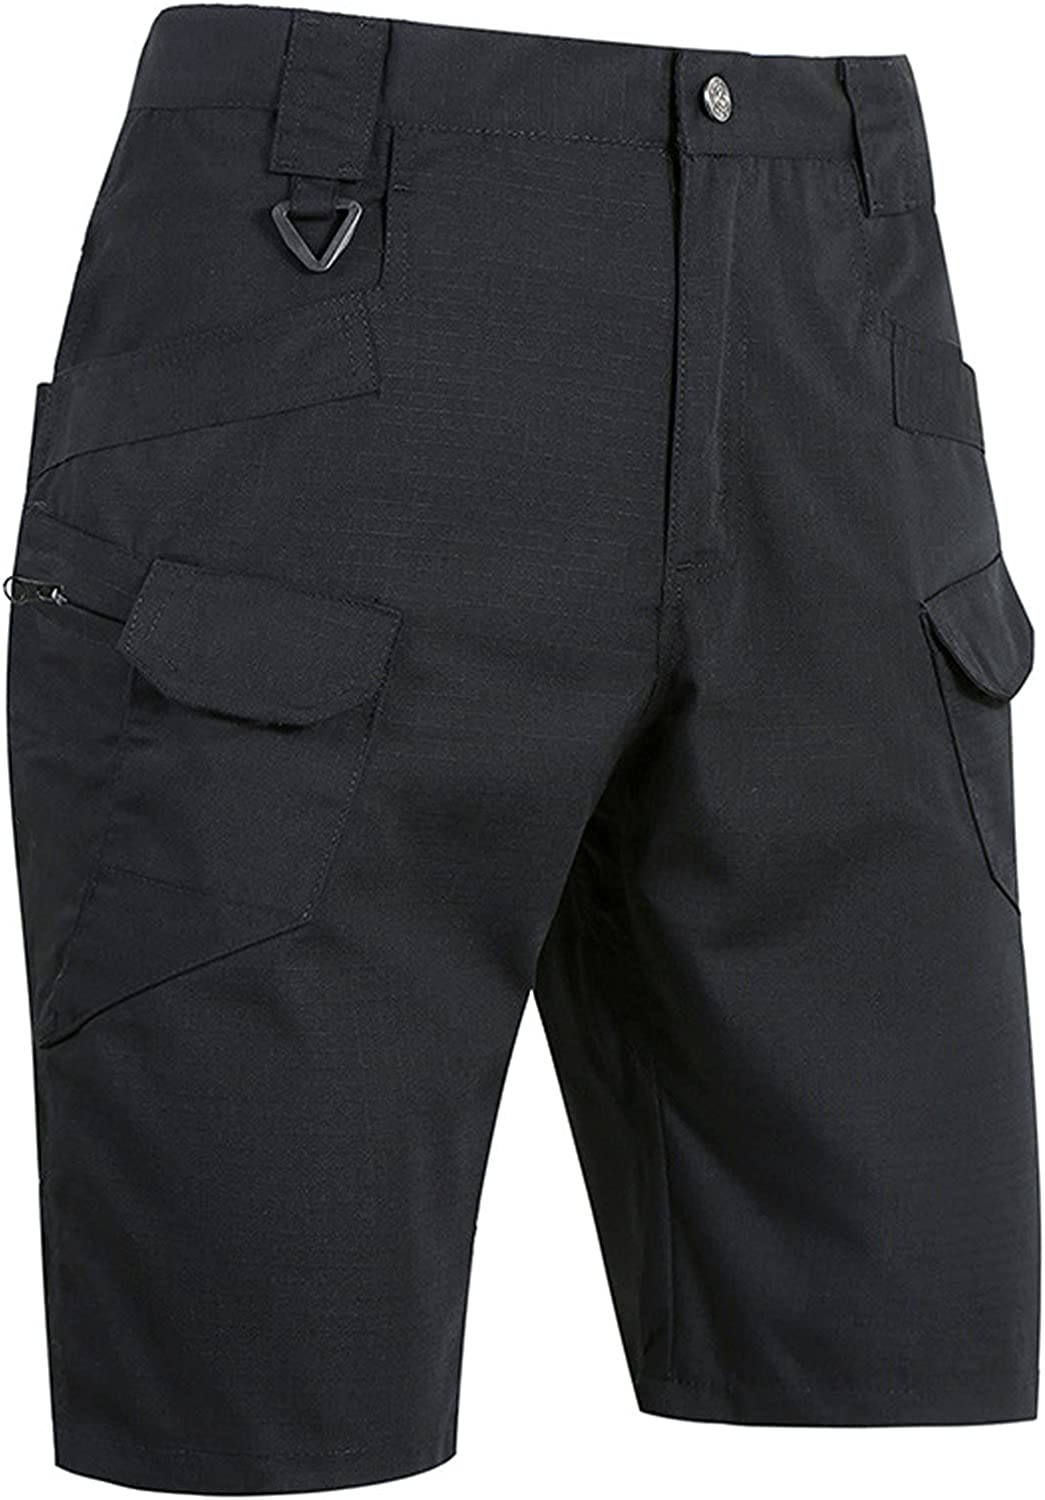 UOFOCO Cargo Shorts for Men Relaxed Fit Waterproof Casual Tactical Shorts Quick Dry Breathable Summer